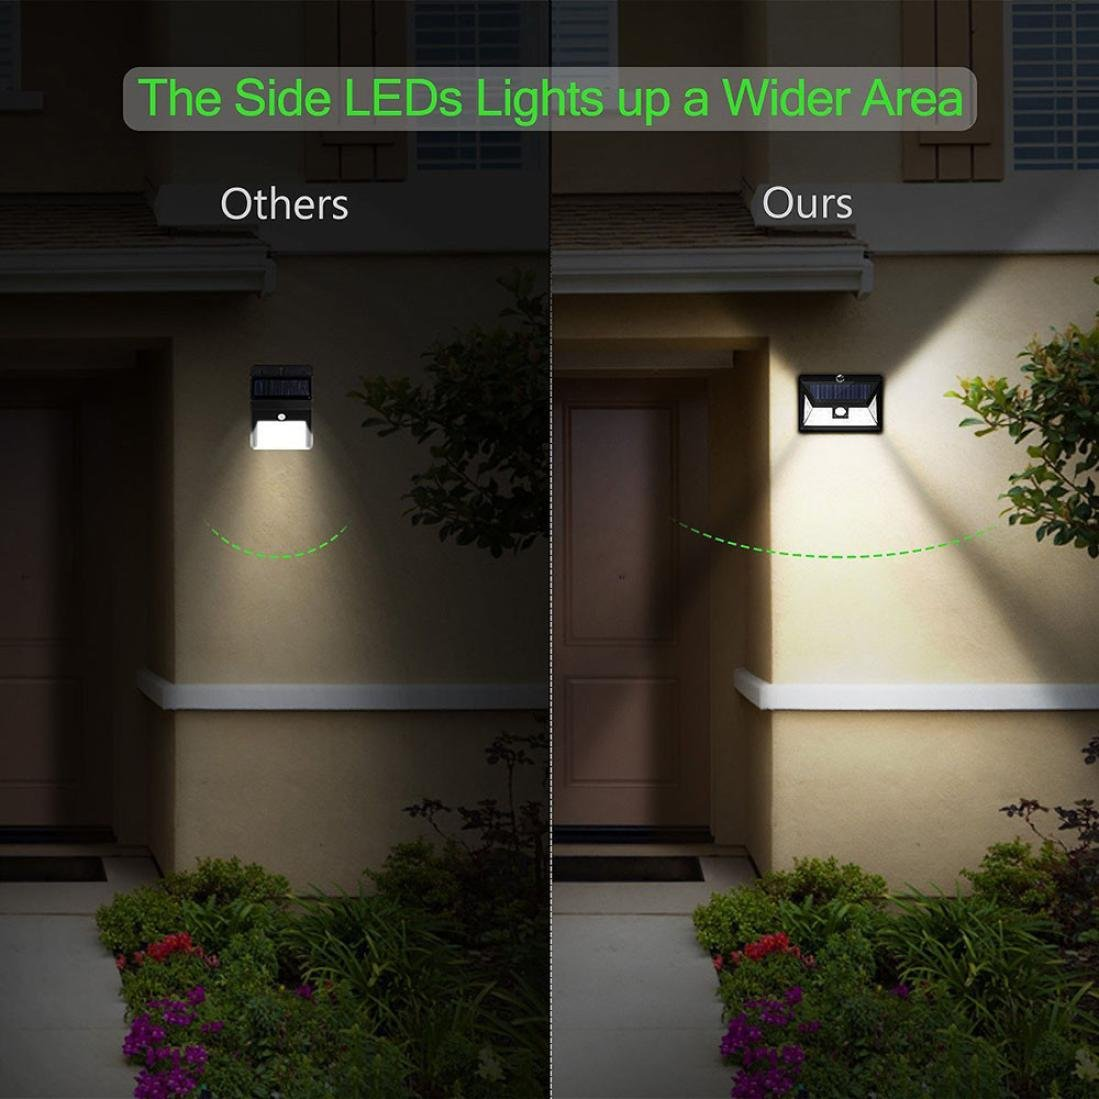 Easy Install Waterproof Security Lights for Front Door Back Yard Coohole 24 LED Motion Sensor Outdoor Solar Lights with Wide Lighting Area Garage Driveway